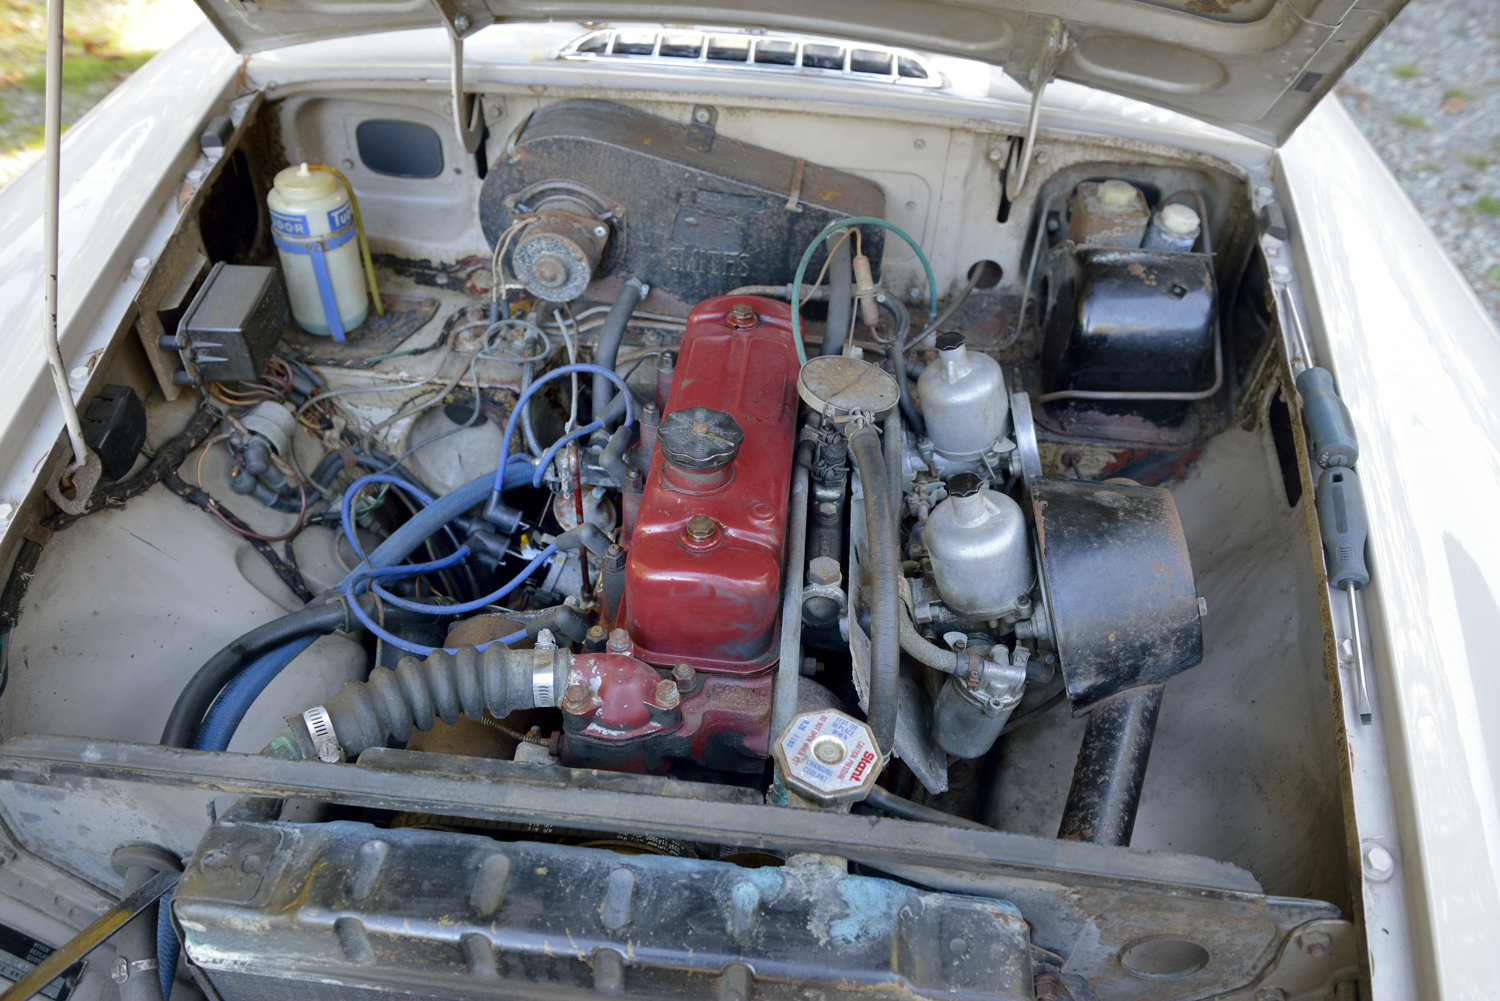 1967 MGB GT engine compartment before cleaning